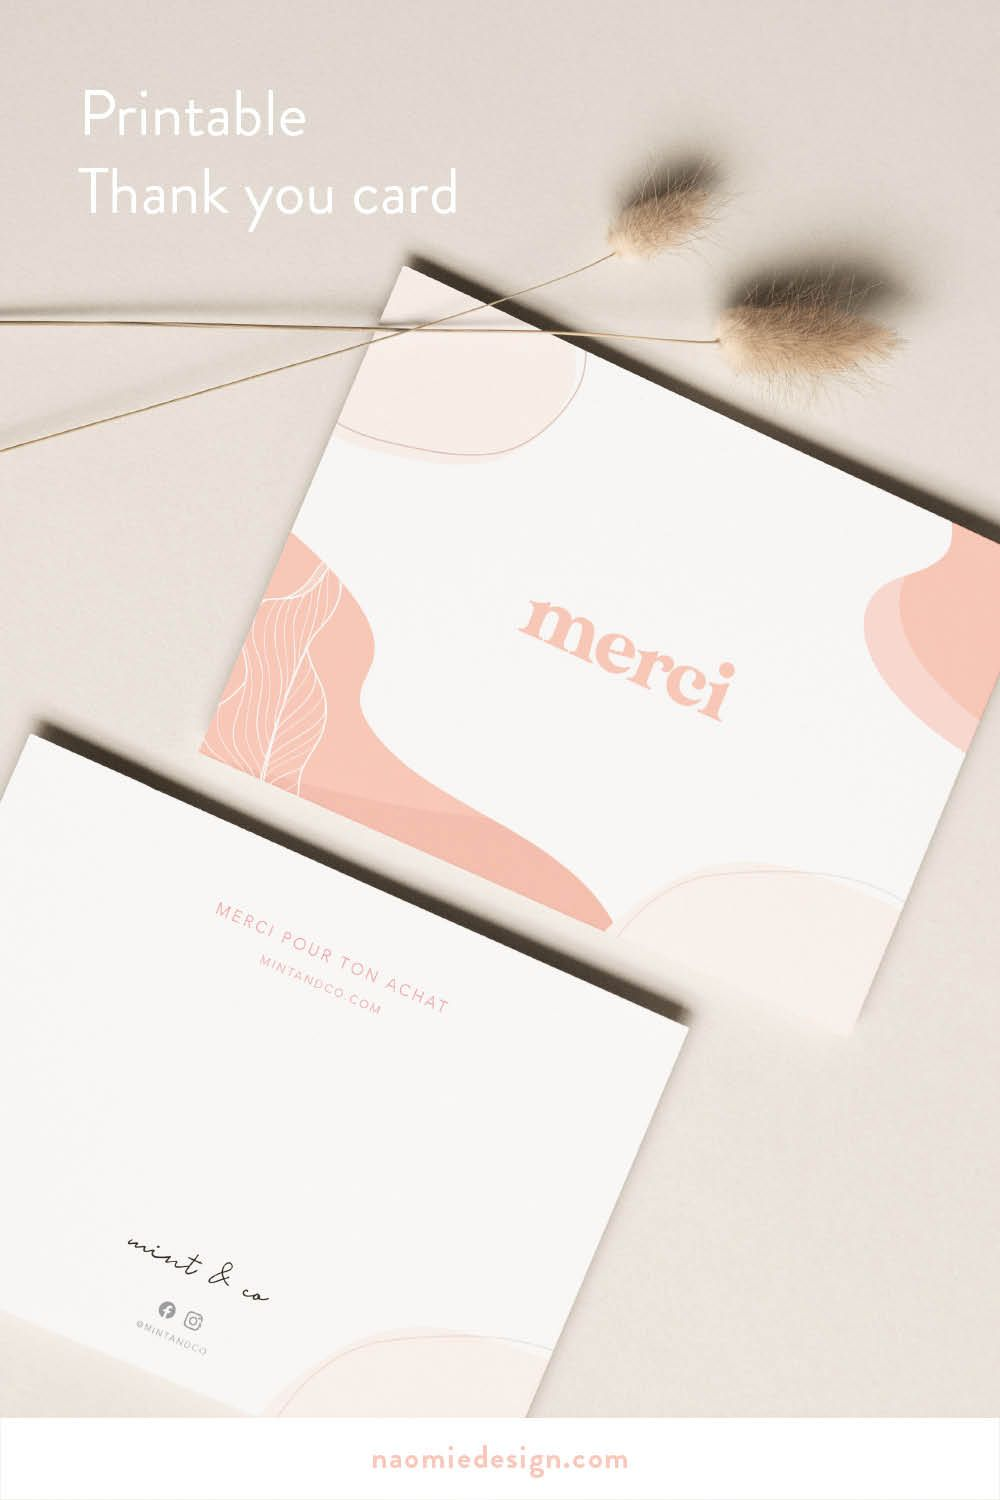 Thank you card — Customize and make your customer feel special! Thank you note